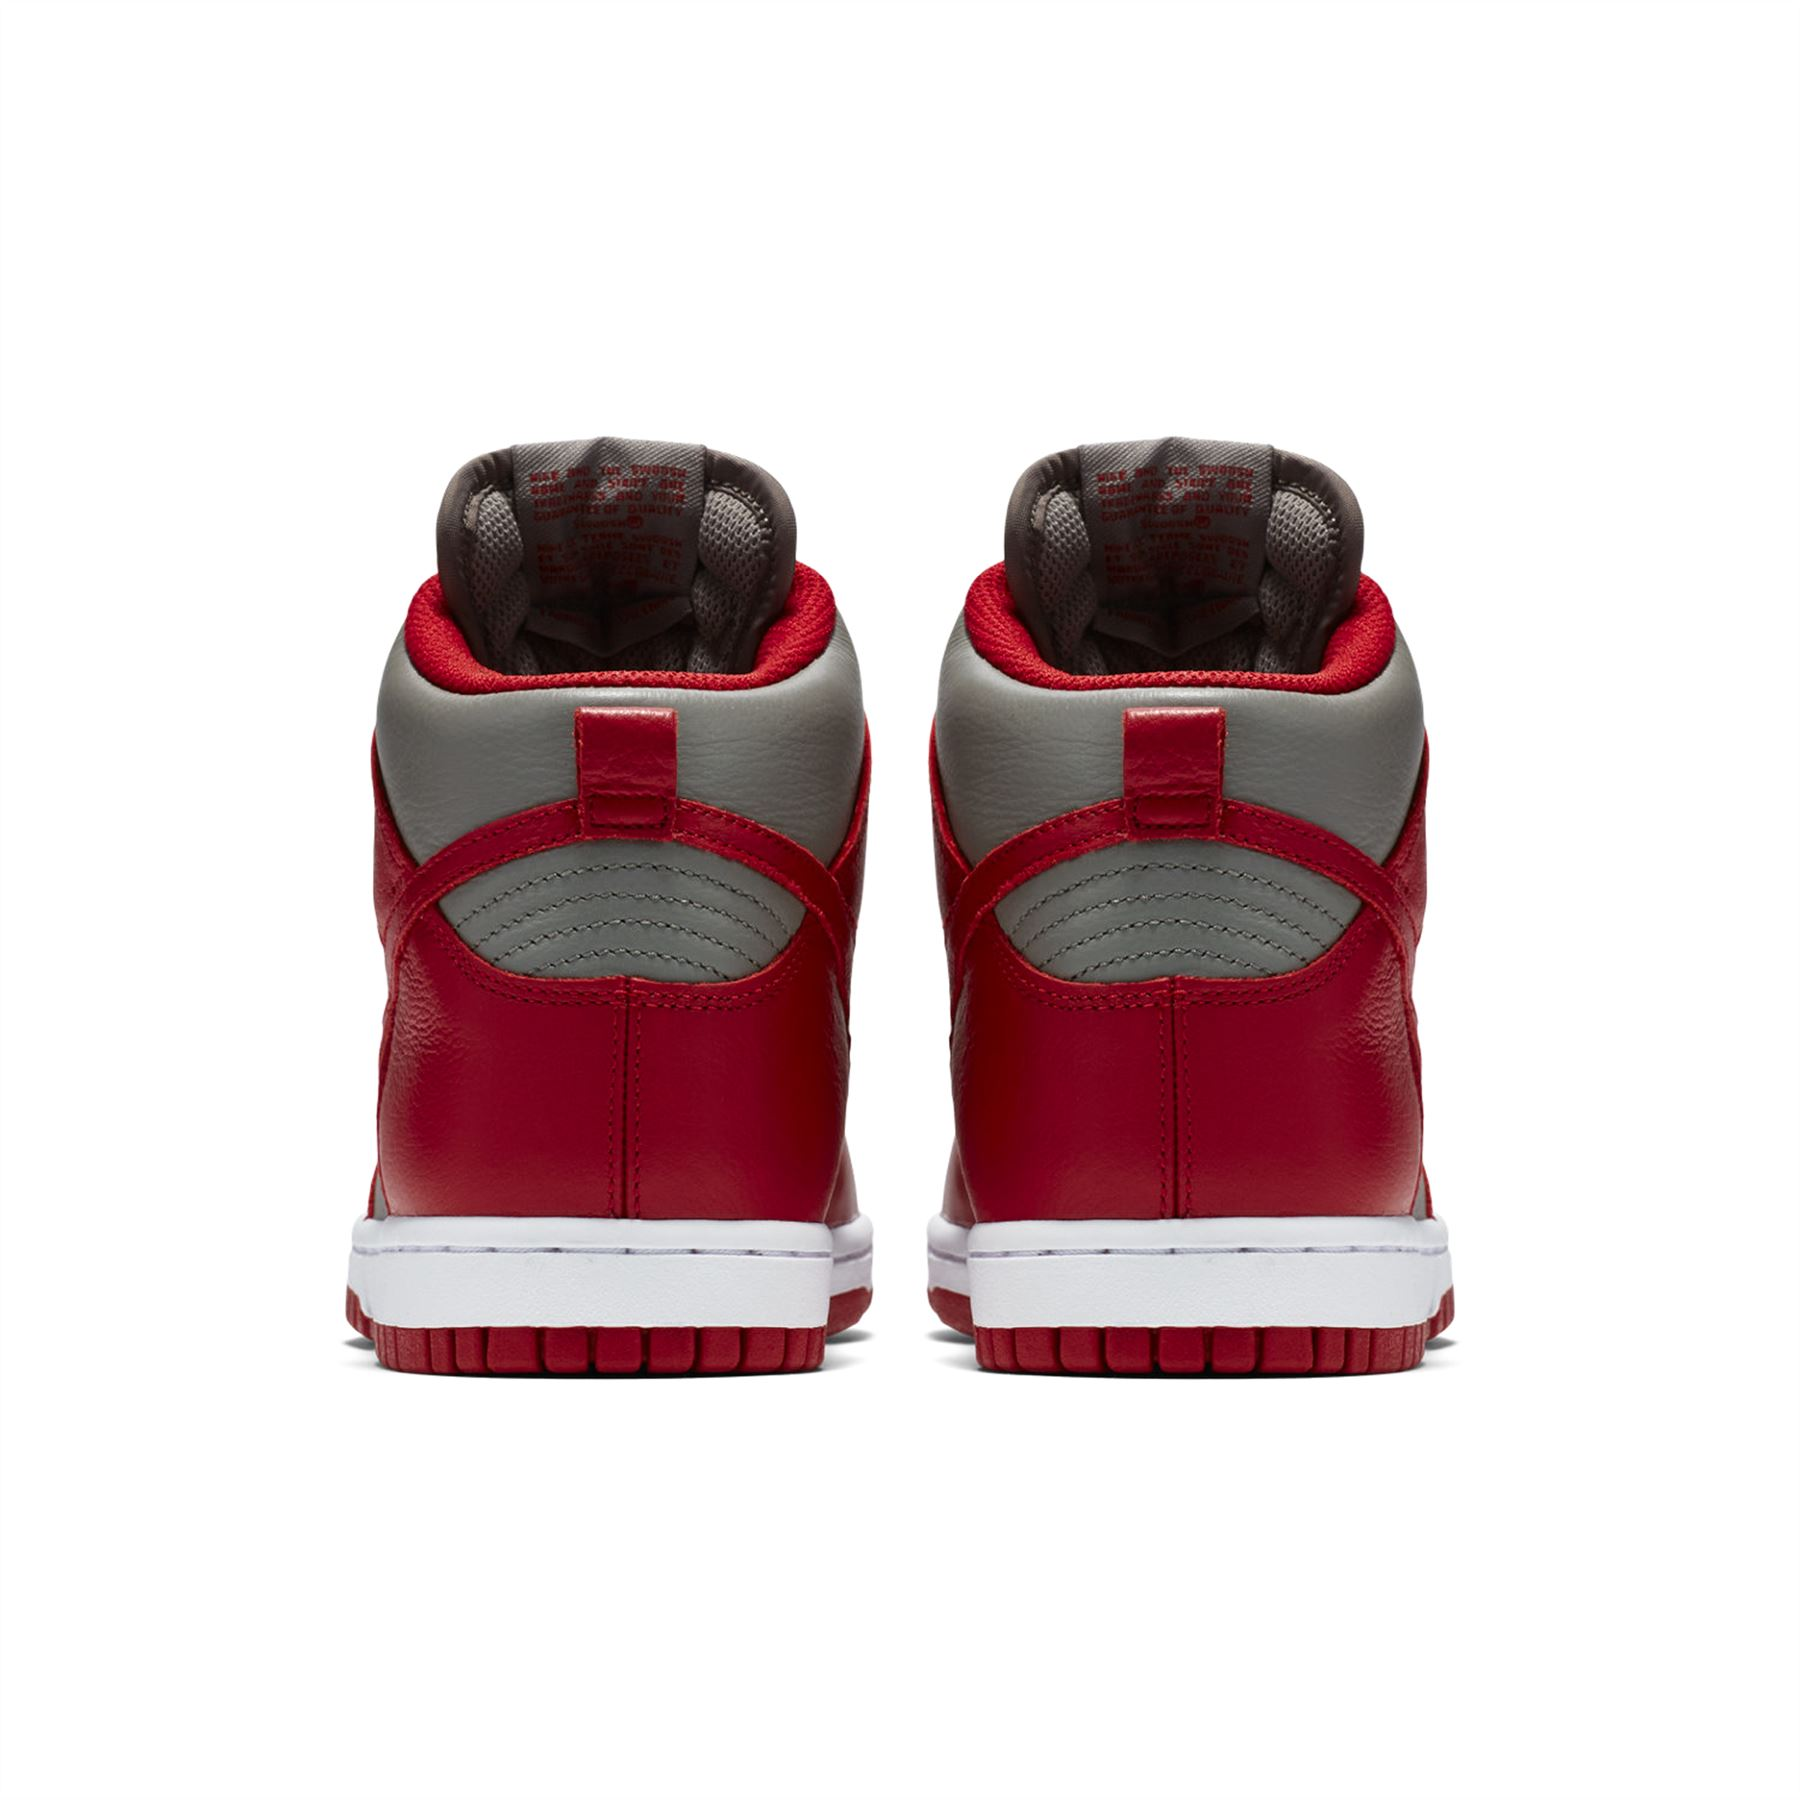 outlet store b5c61 35152 Nike-Mujeres-Dunk-Retro-Qs-Baloncesto-Hi-Top-